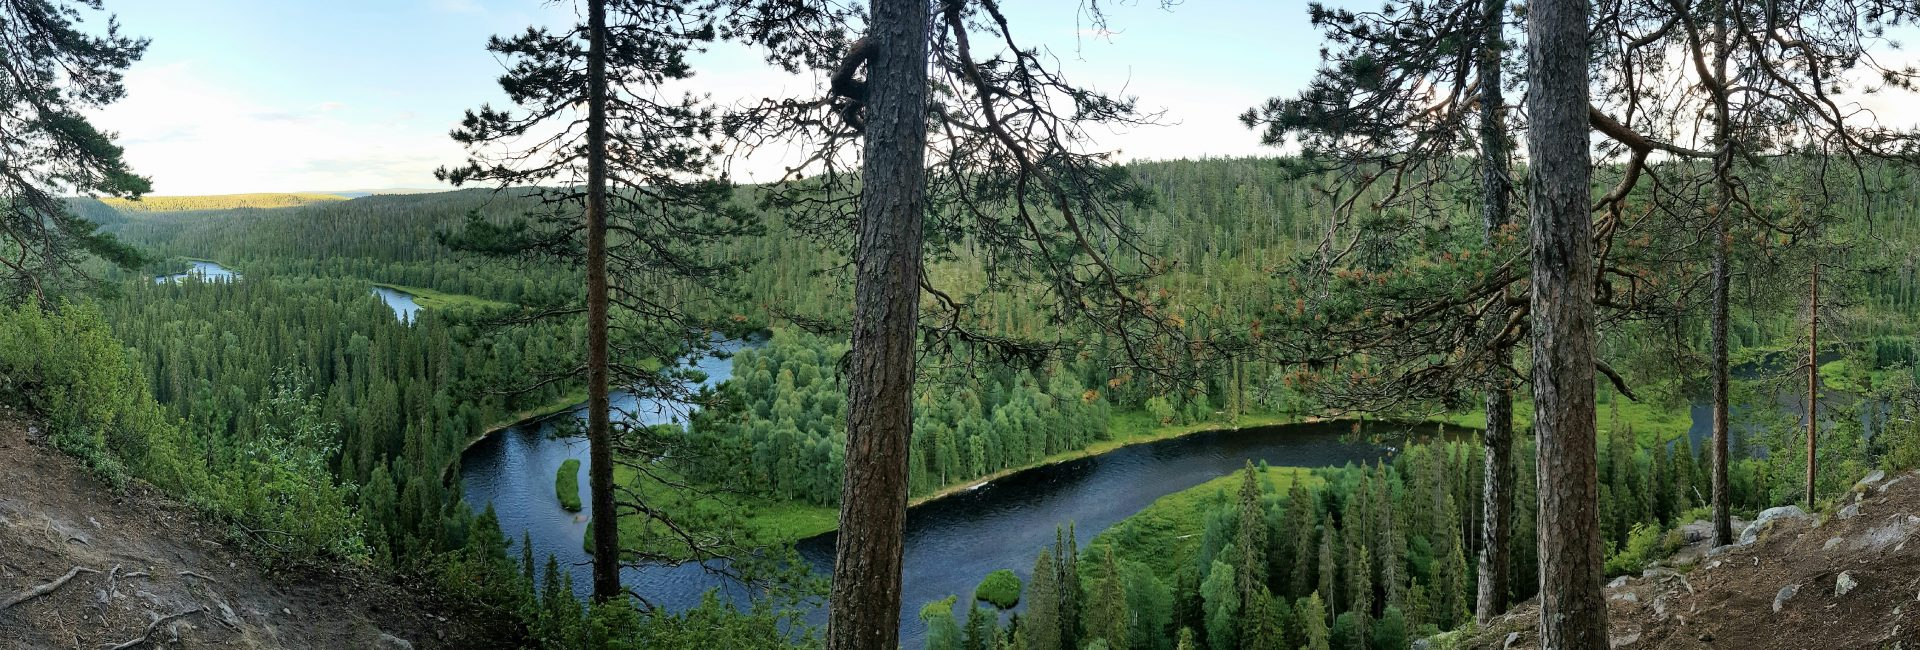 Incredible views over Oulanka National park and Pähkänänkallio